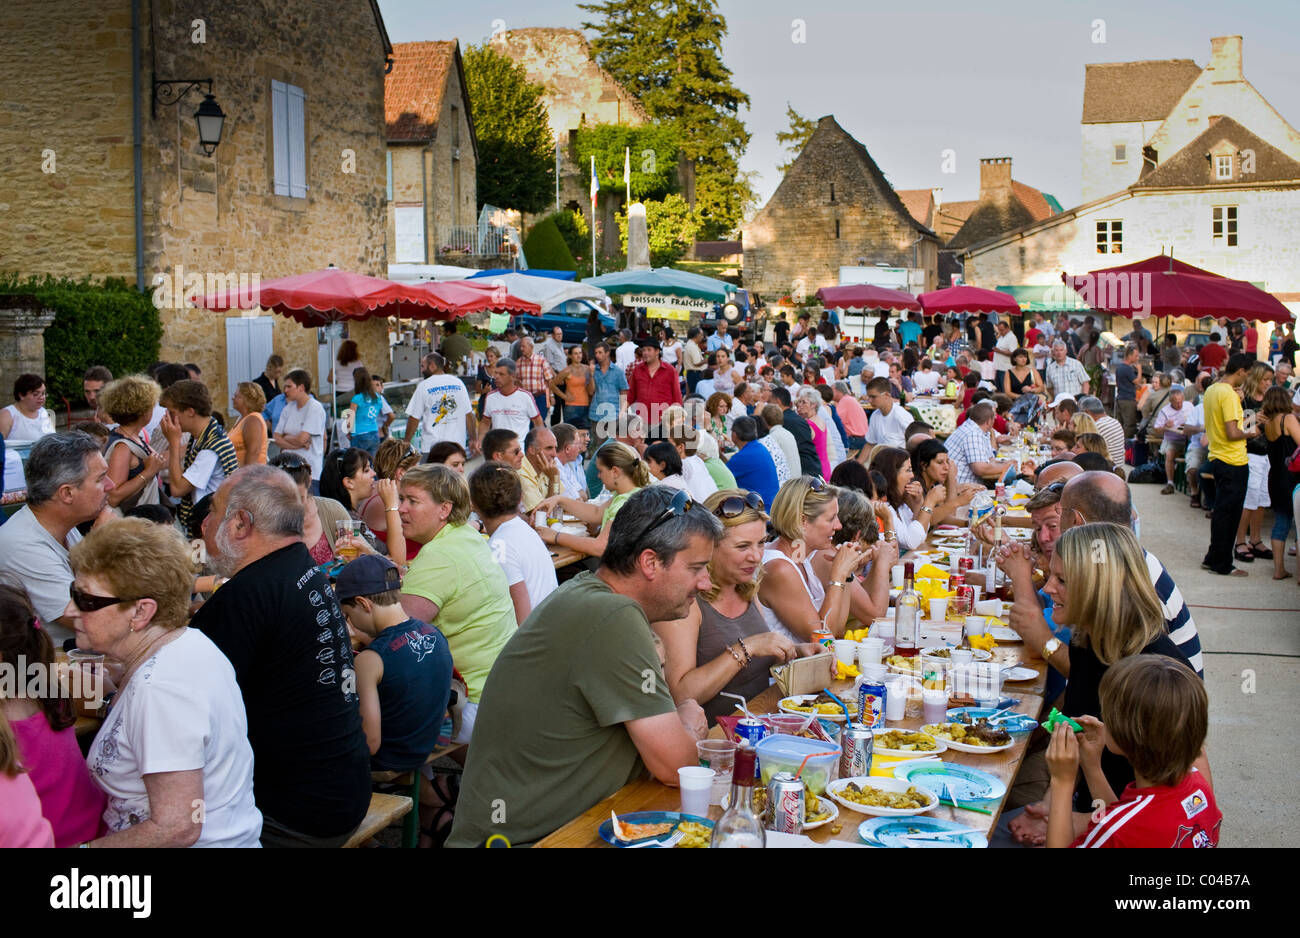 Village fete traditional festival in St Genies in the Perigord region, France - Stock Image